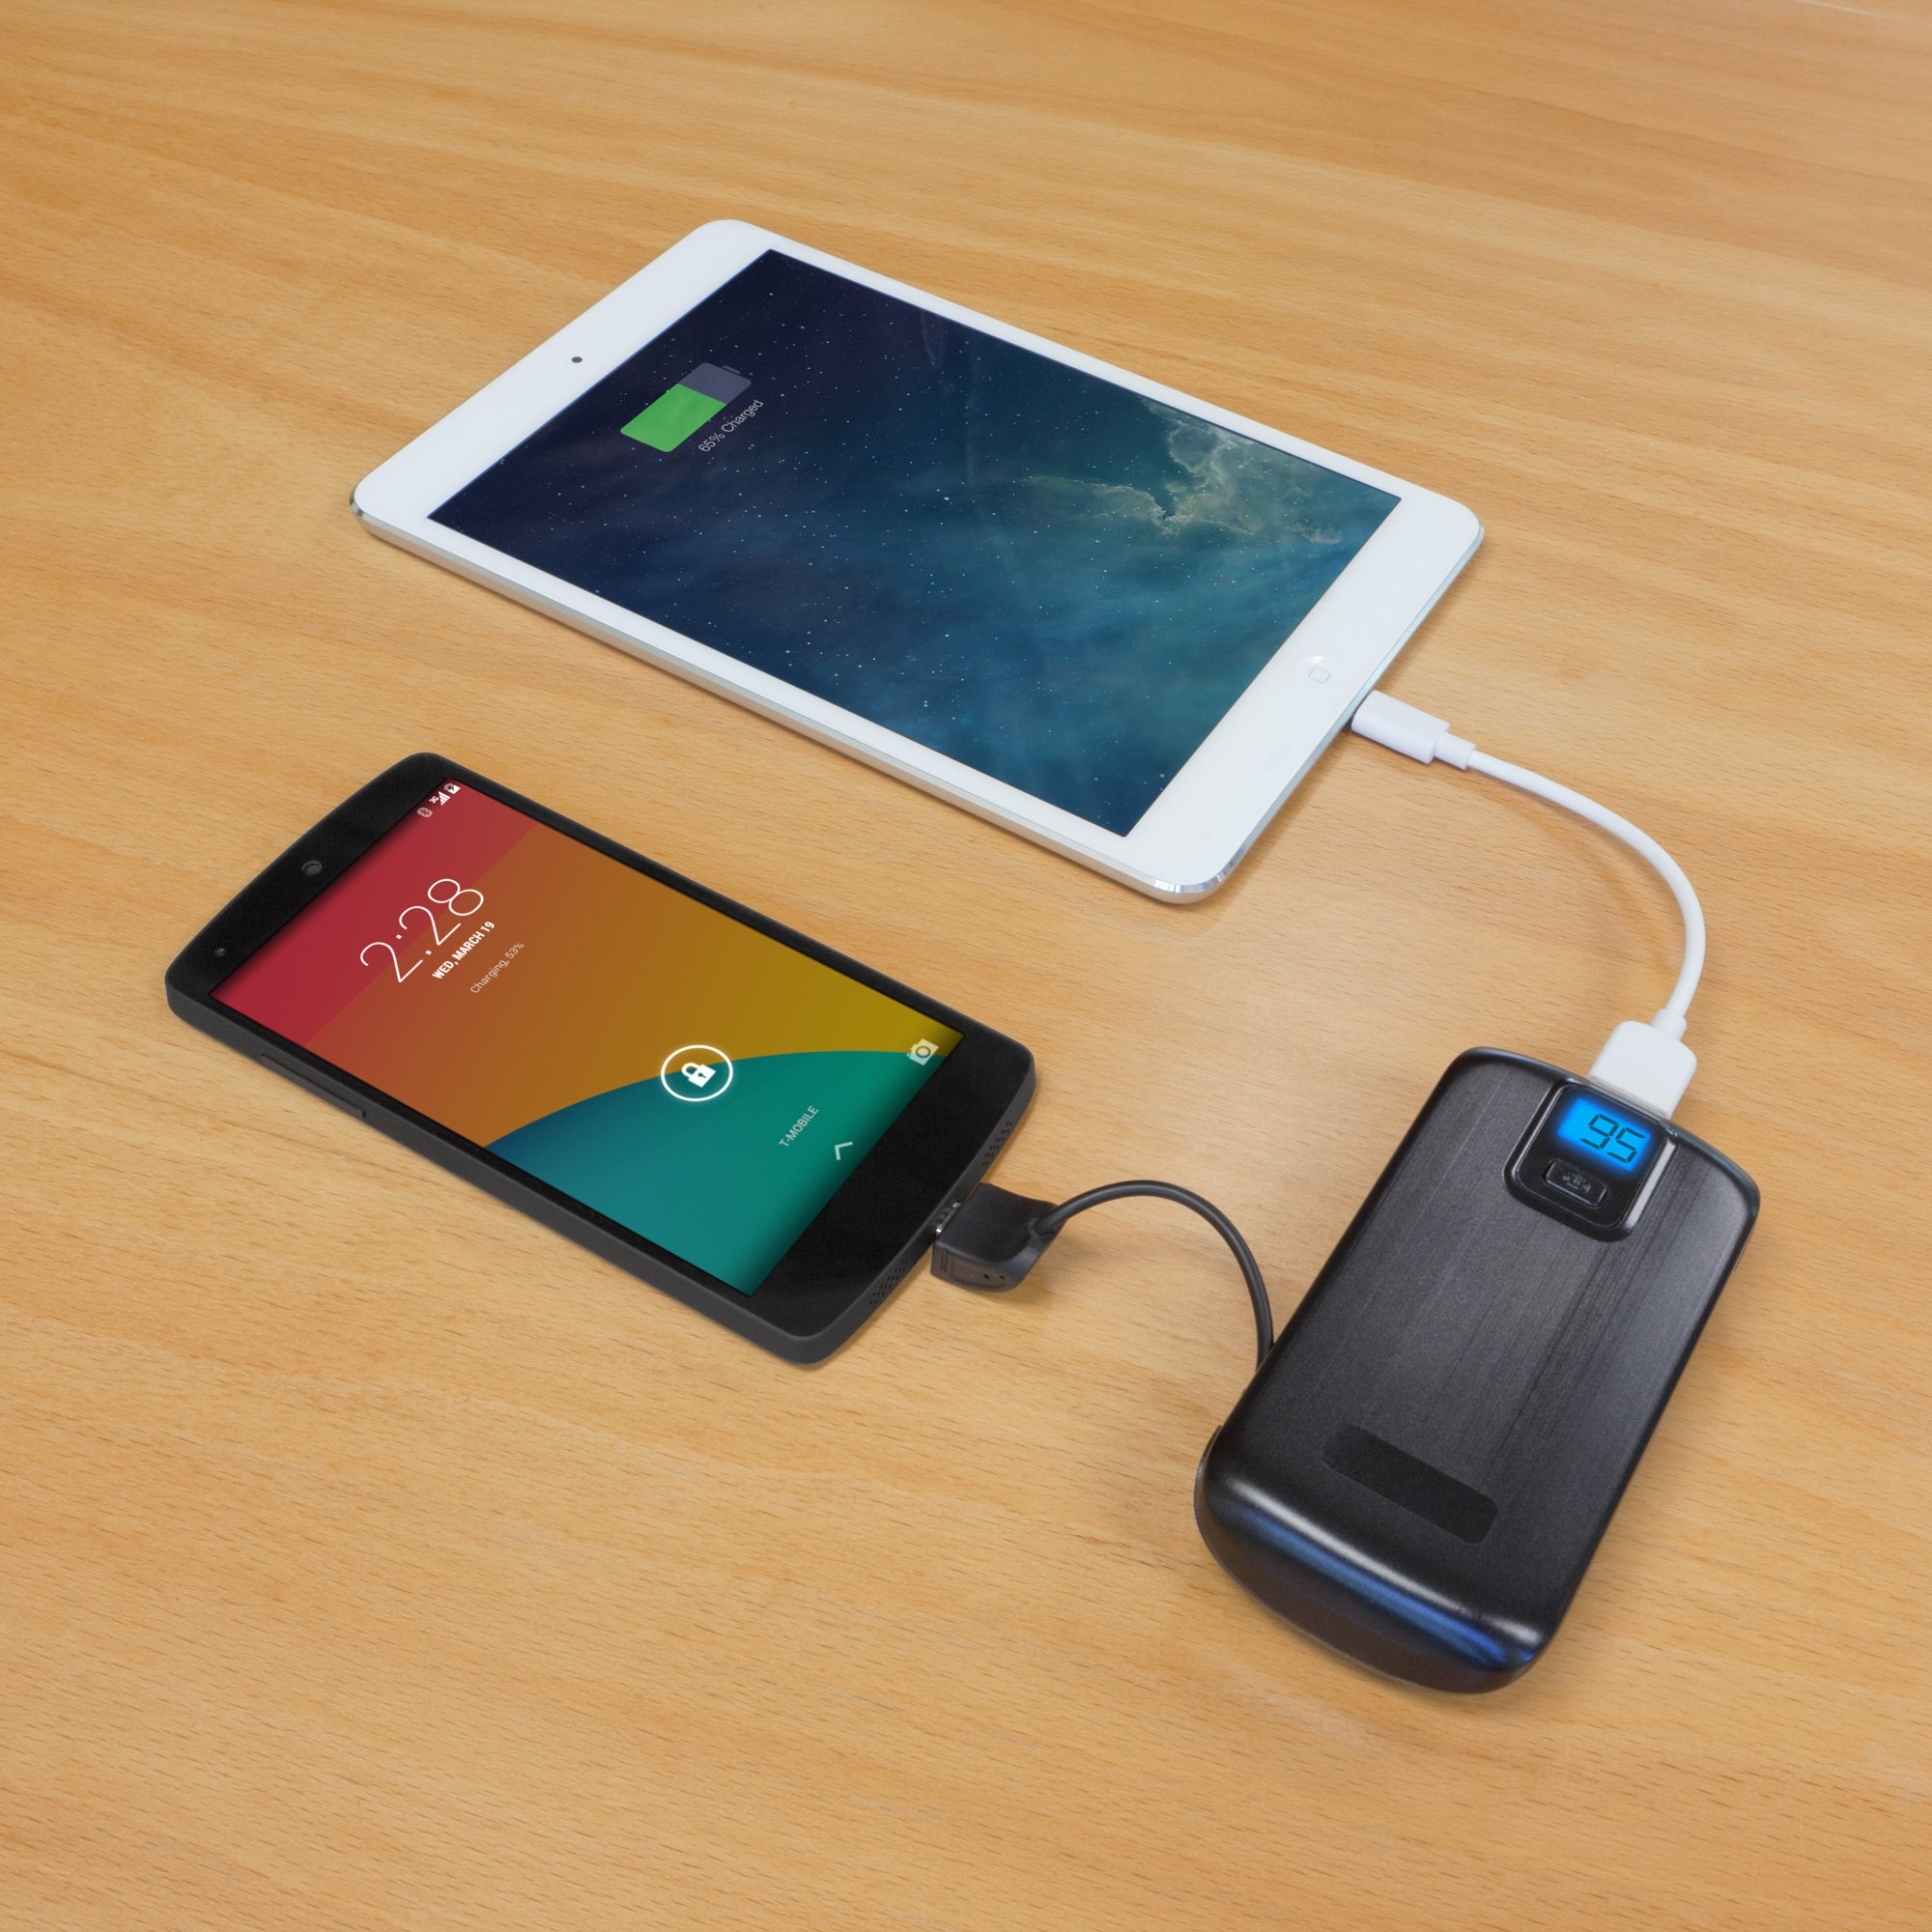 BoxWave Rejuva Power Pack Pro Power Bank - Compact, Portable 4,400 mAh Rechargeable Li-ion Battery Charger and Power Bank - Compatible with Apple iPhone 5, iPhone 6, iPad 3, iPad 4, iPad Air, Samsung Galaxy S4, Galaxy S5, OnePlus One, and many more! (Blac by BoxWave (Image #5)